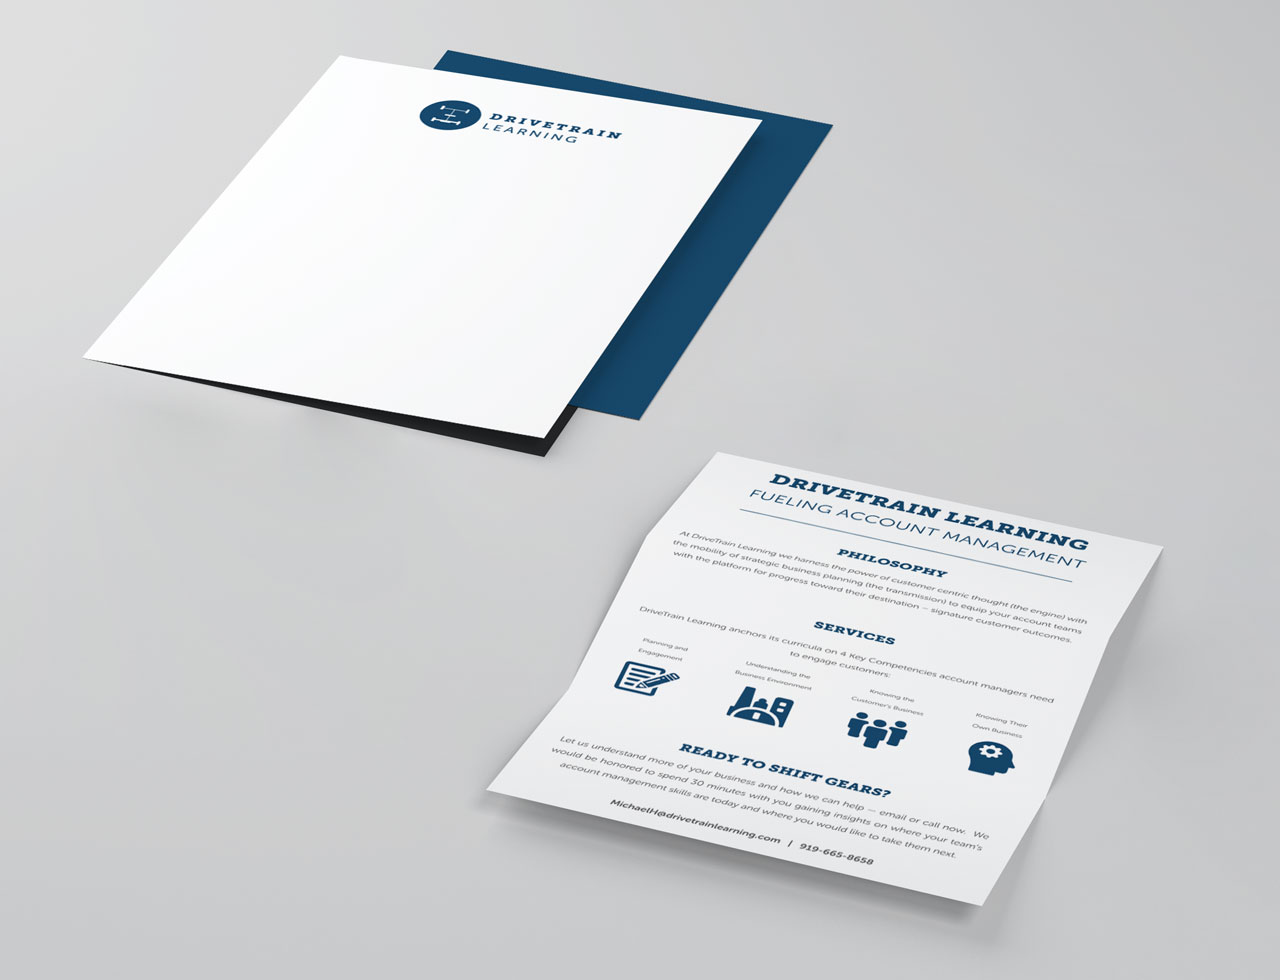 Letterhead and brochure mockup for pharmaceutical sales training company DriveTrain Learning